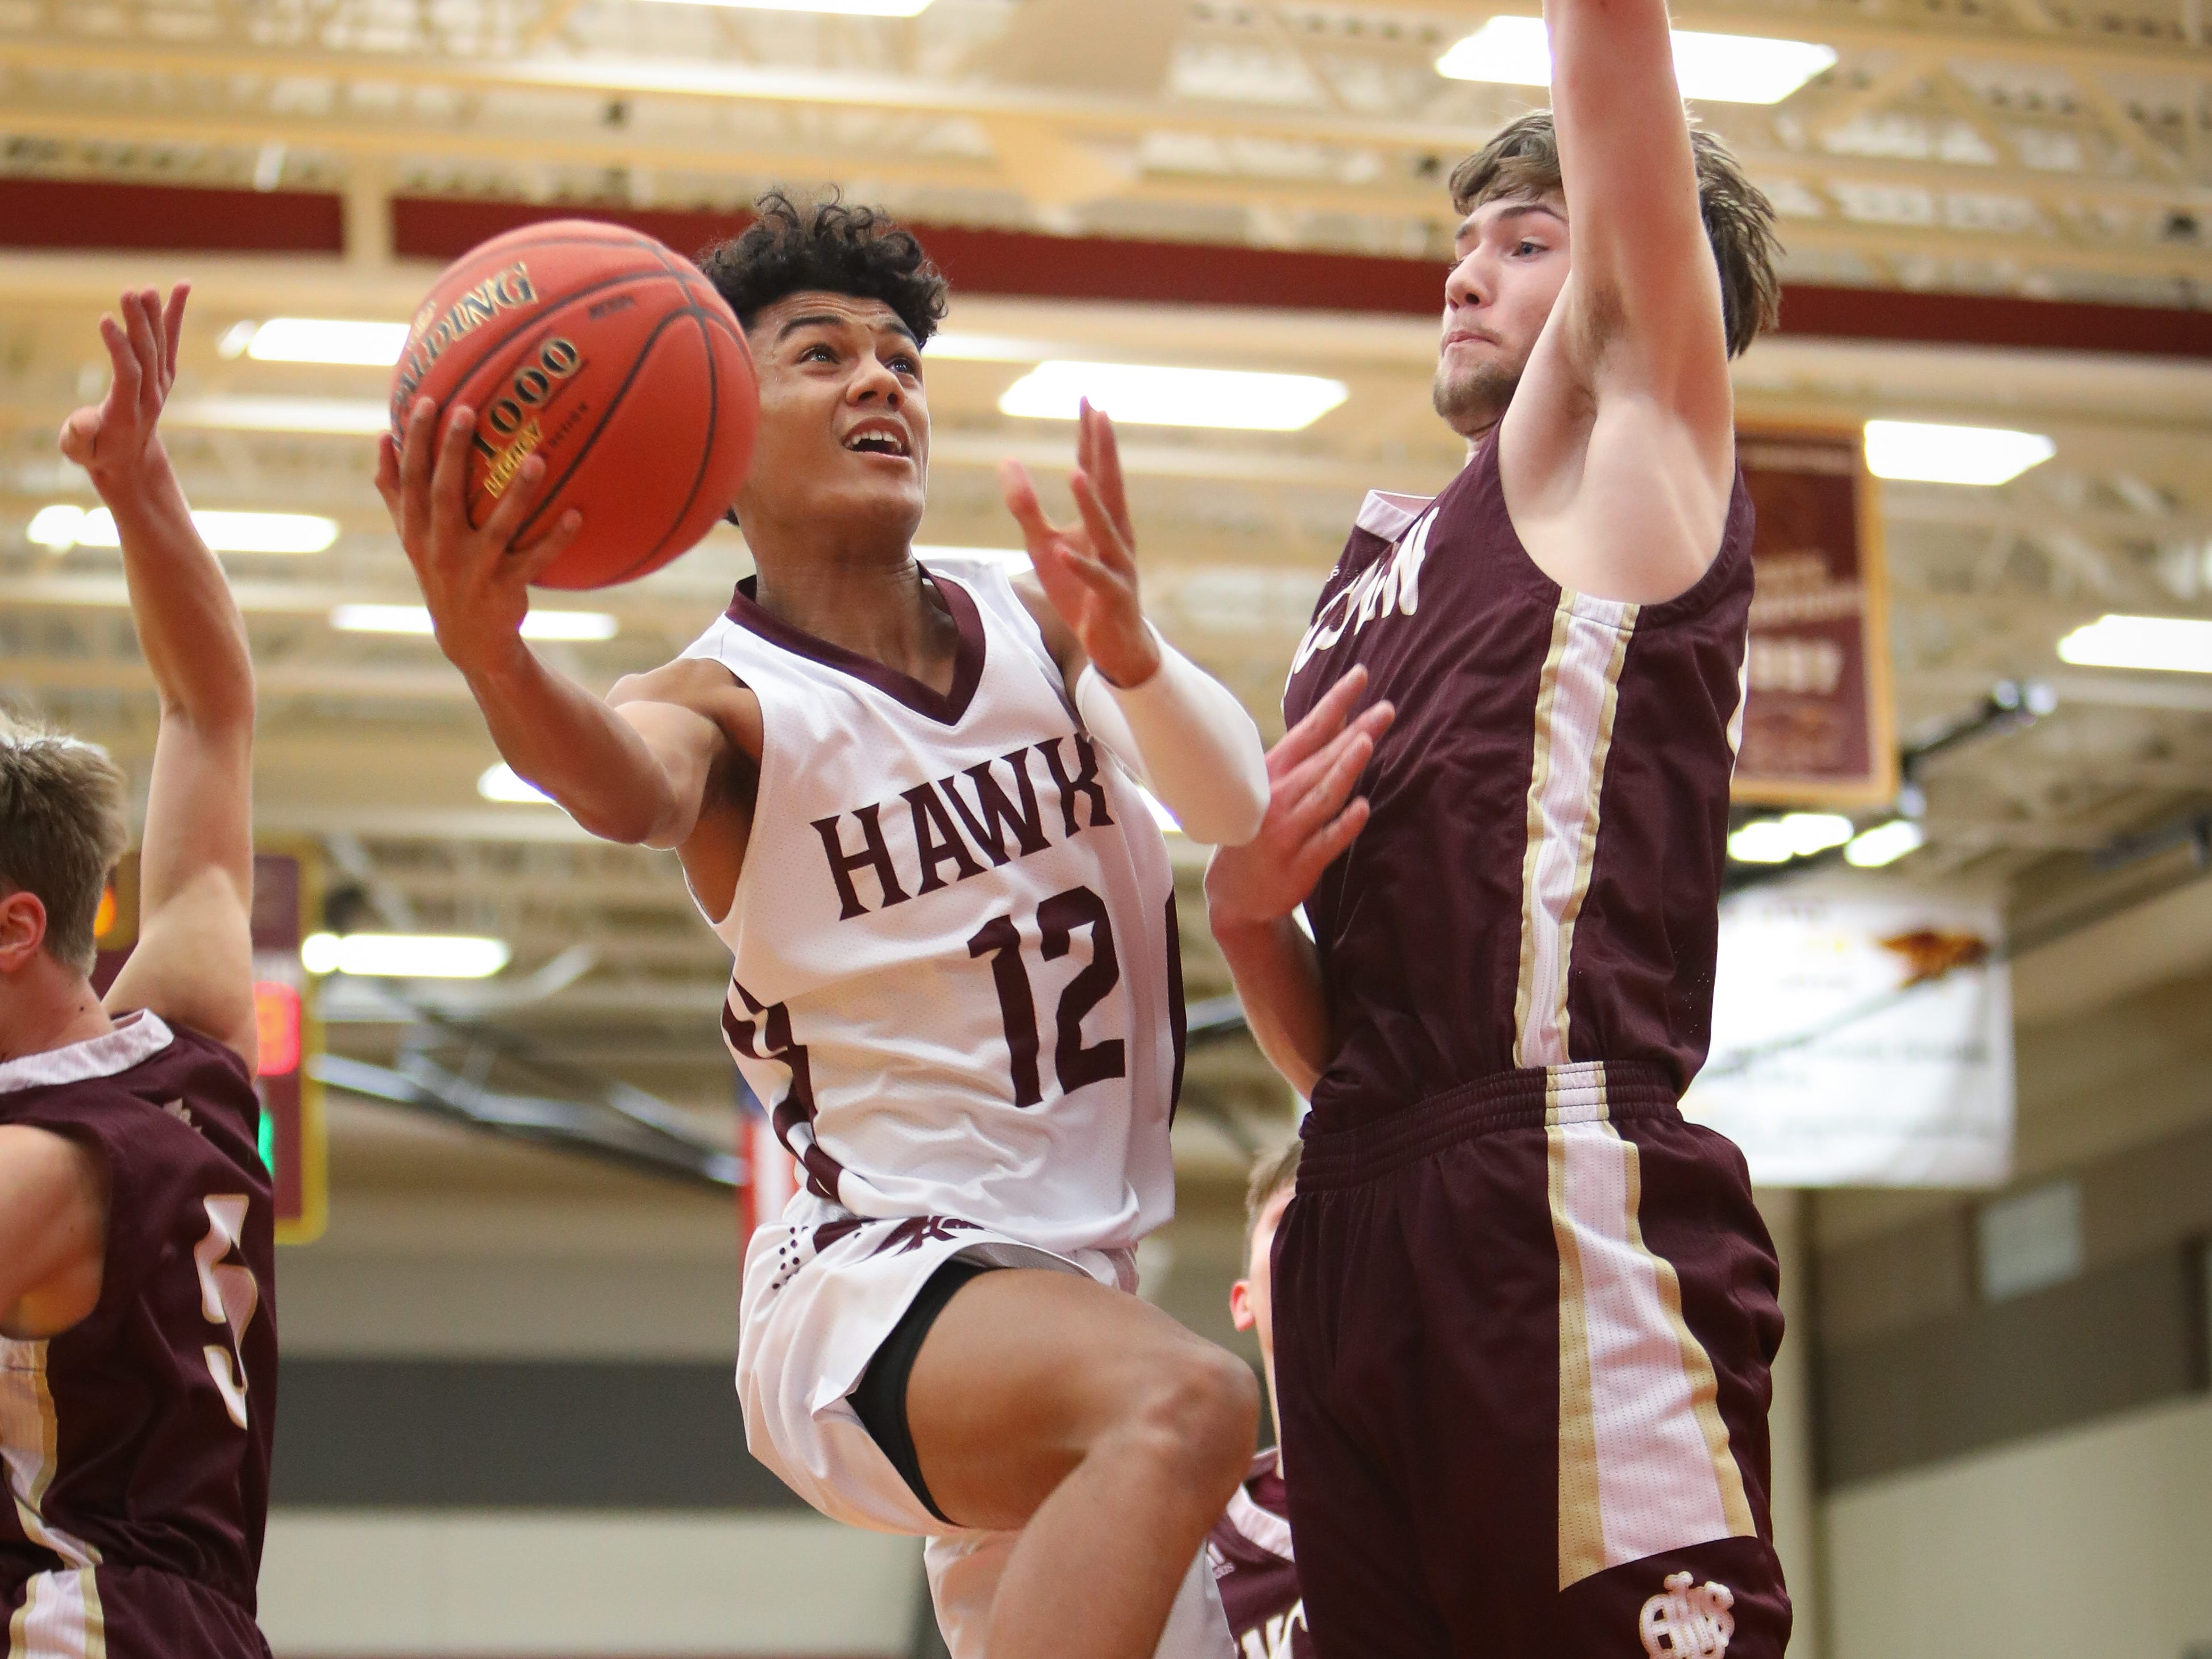 Ankeny junior Jaxon Smith goes for a lay-up past Lincoln senior Logan Sharp during a boys high school basketball game between the Lincoln Railsplitters and the Ankeny Hawks at Ankeny High School on Dec. 4, 2018 in Ankeny, Iowa.